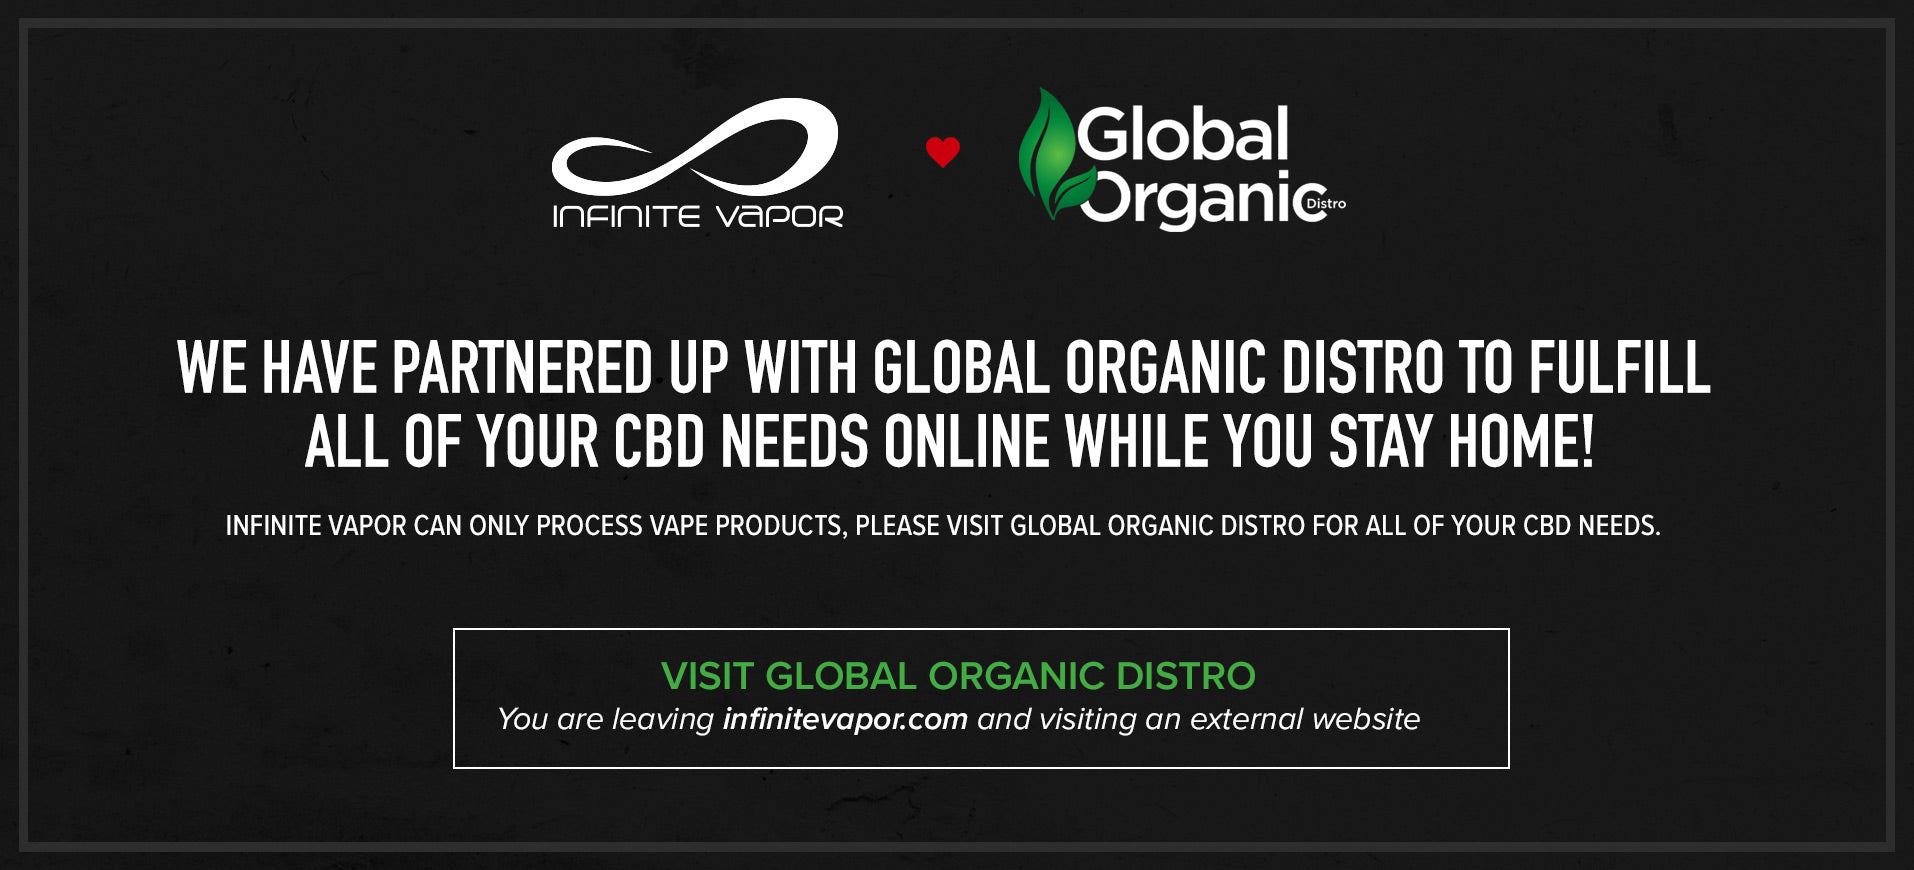 CBD Products - Infinite Vapor - Global Organic Distro